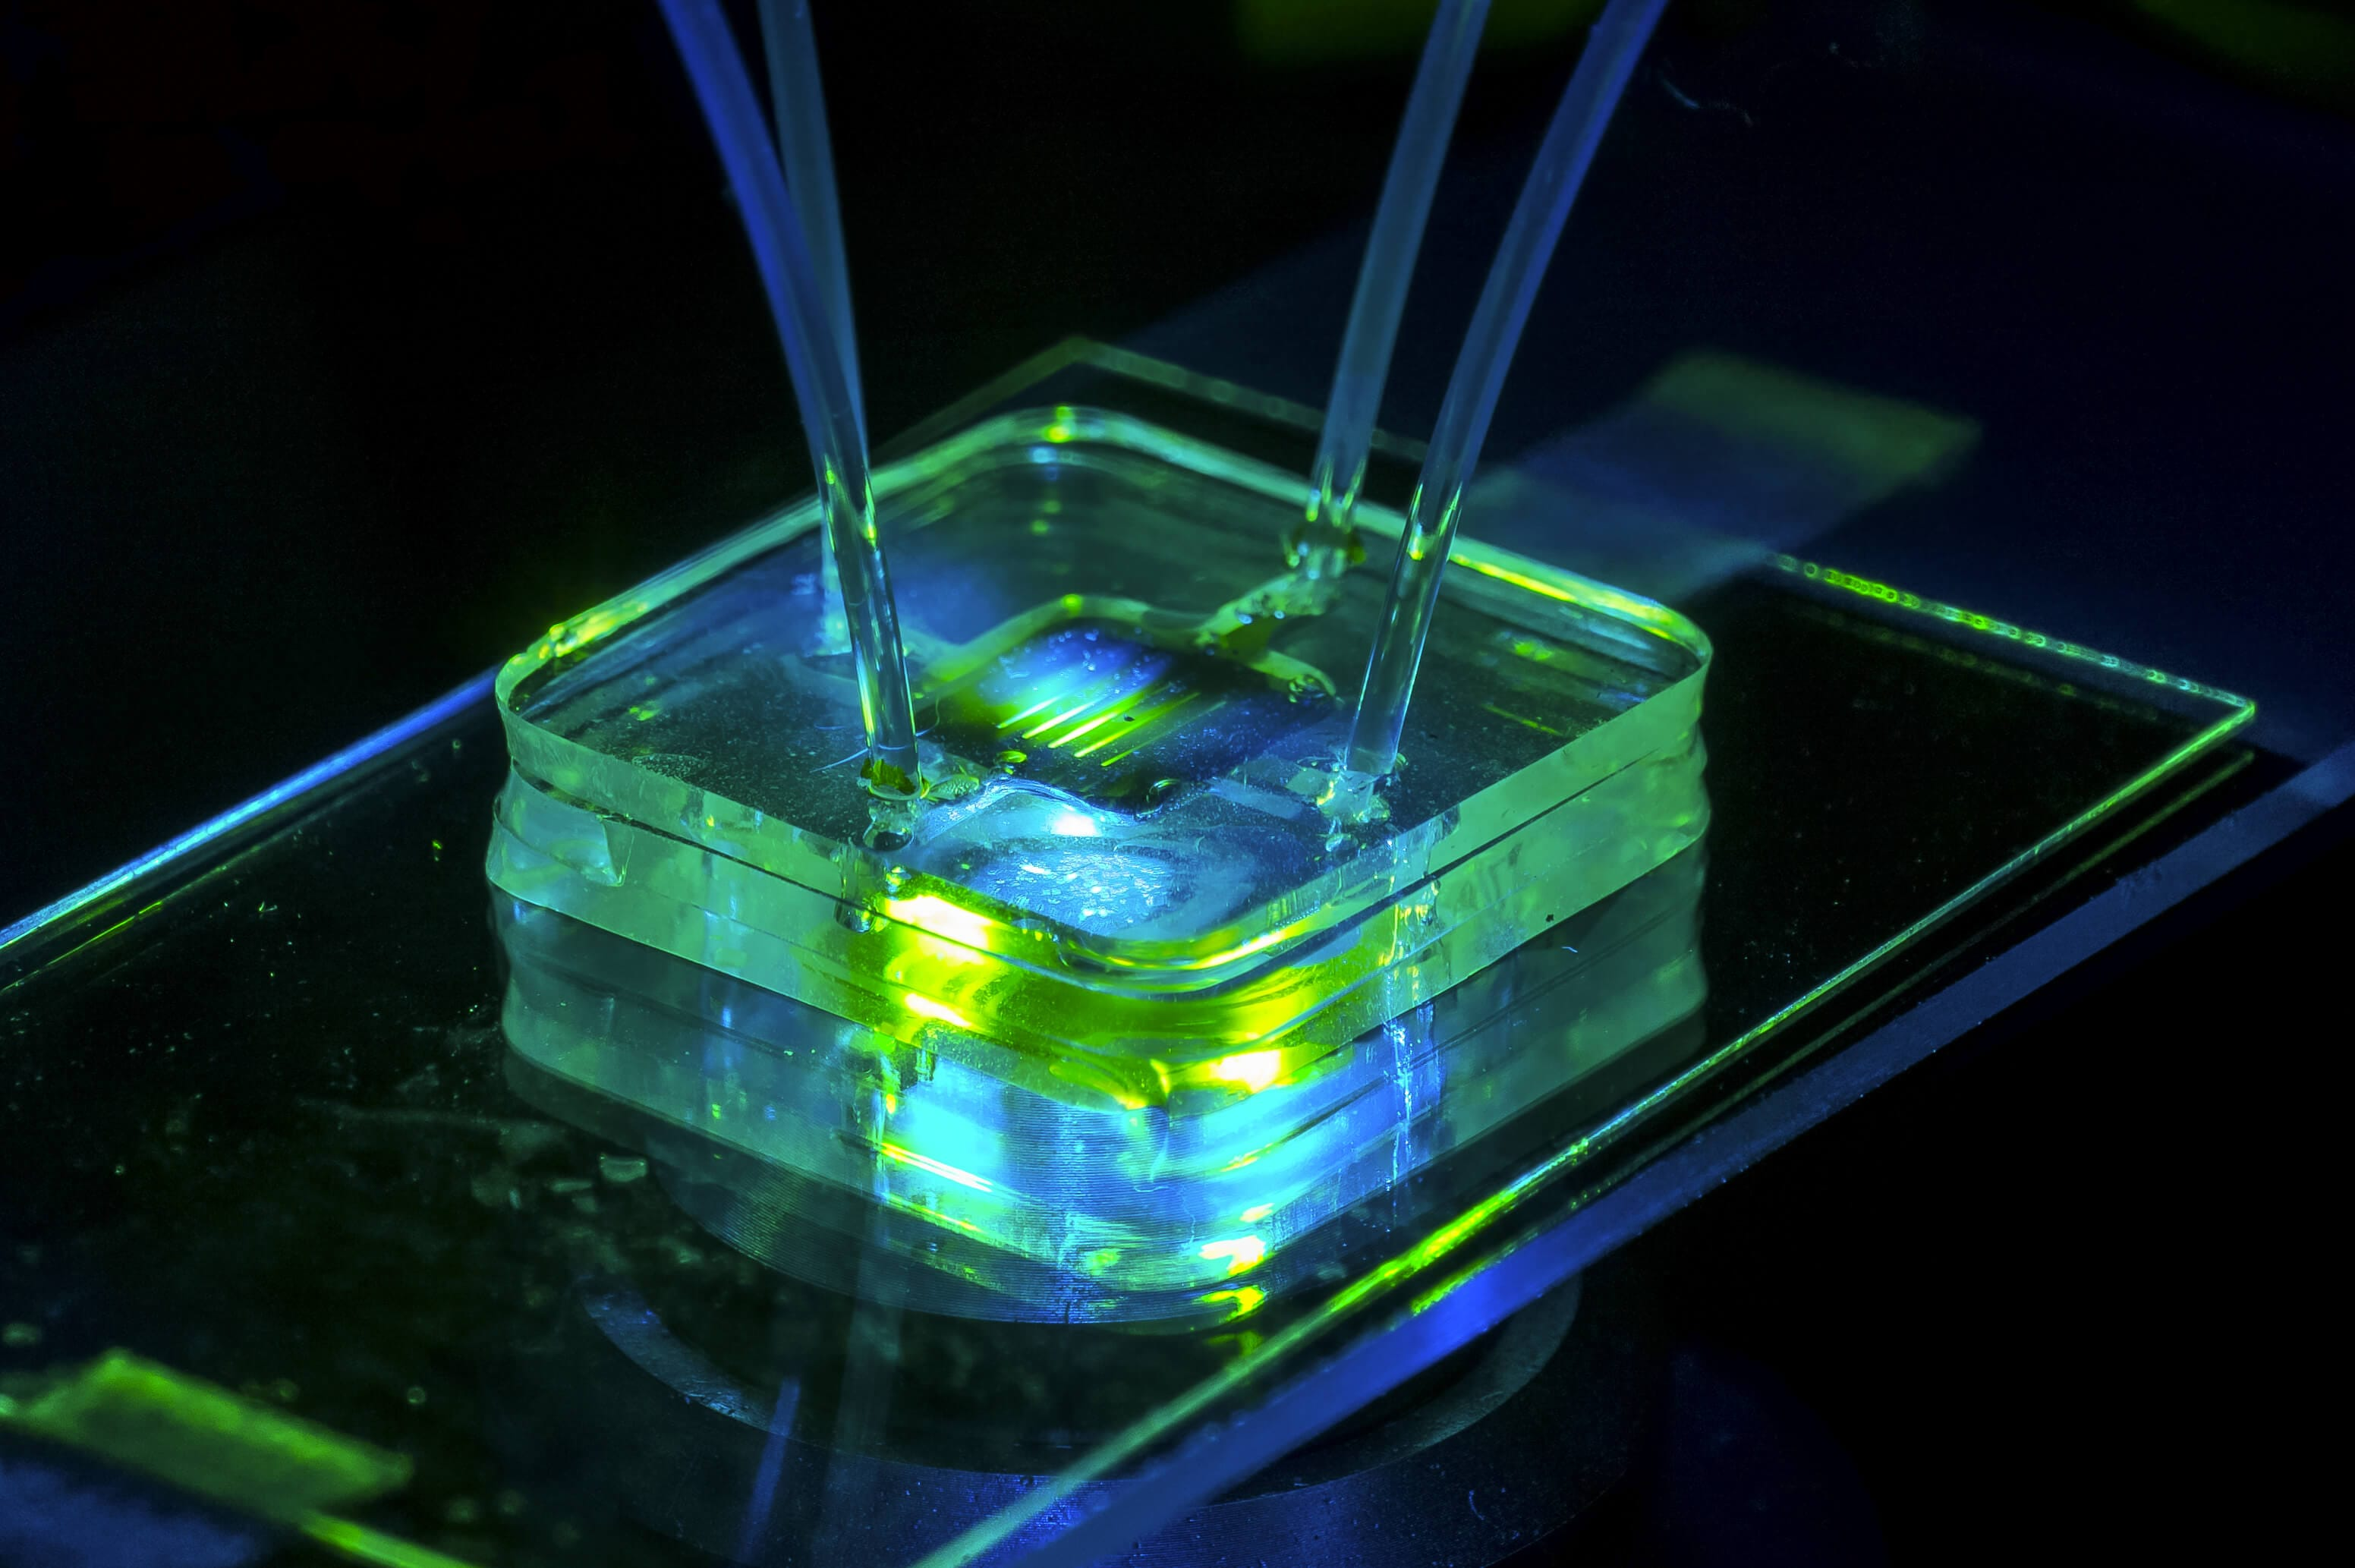 Materials for Microfluidic Chips Fabrication